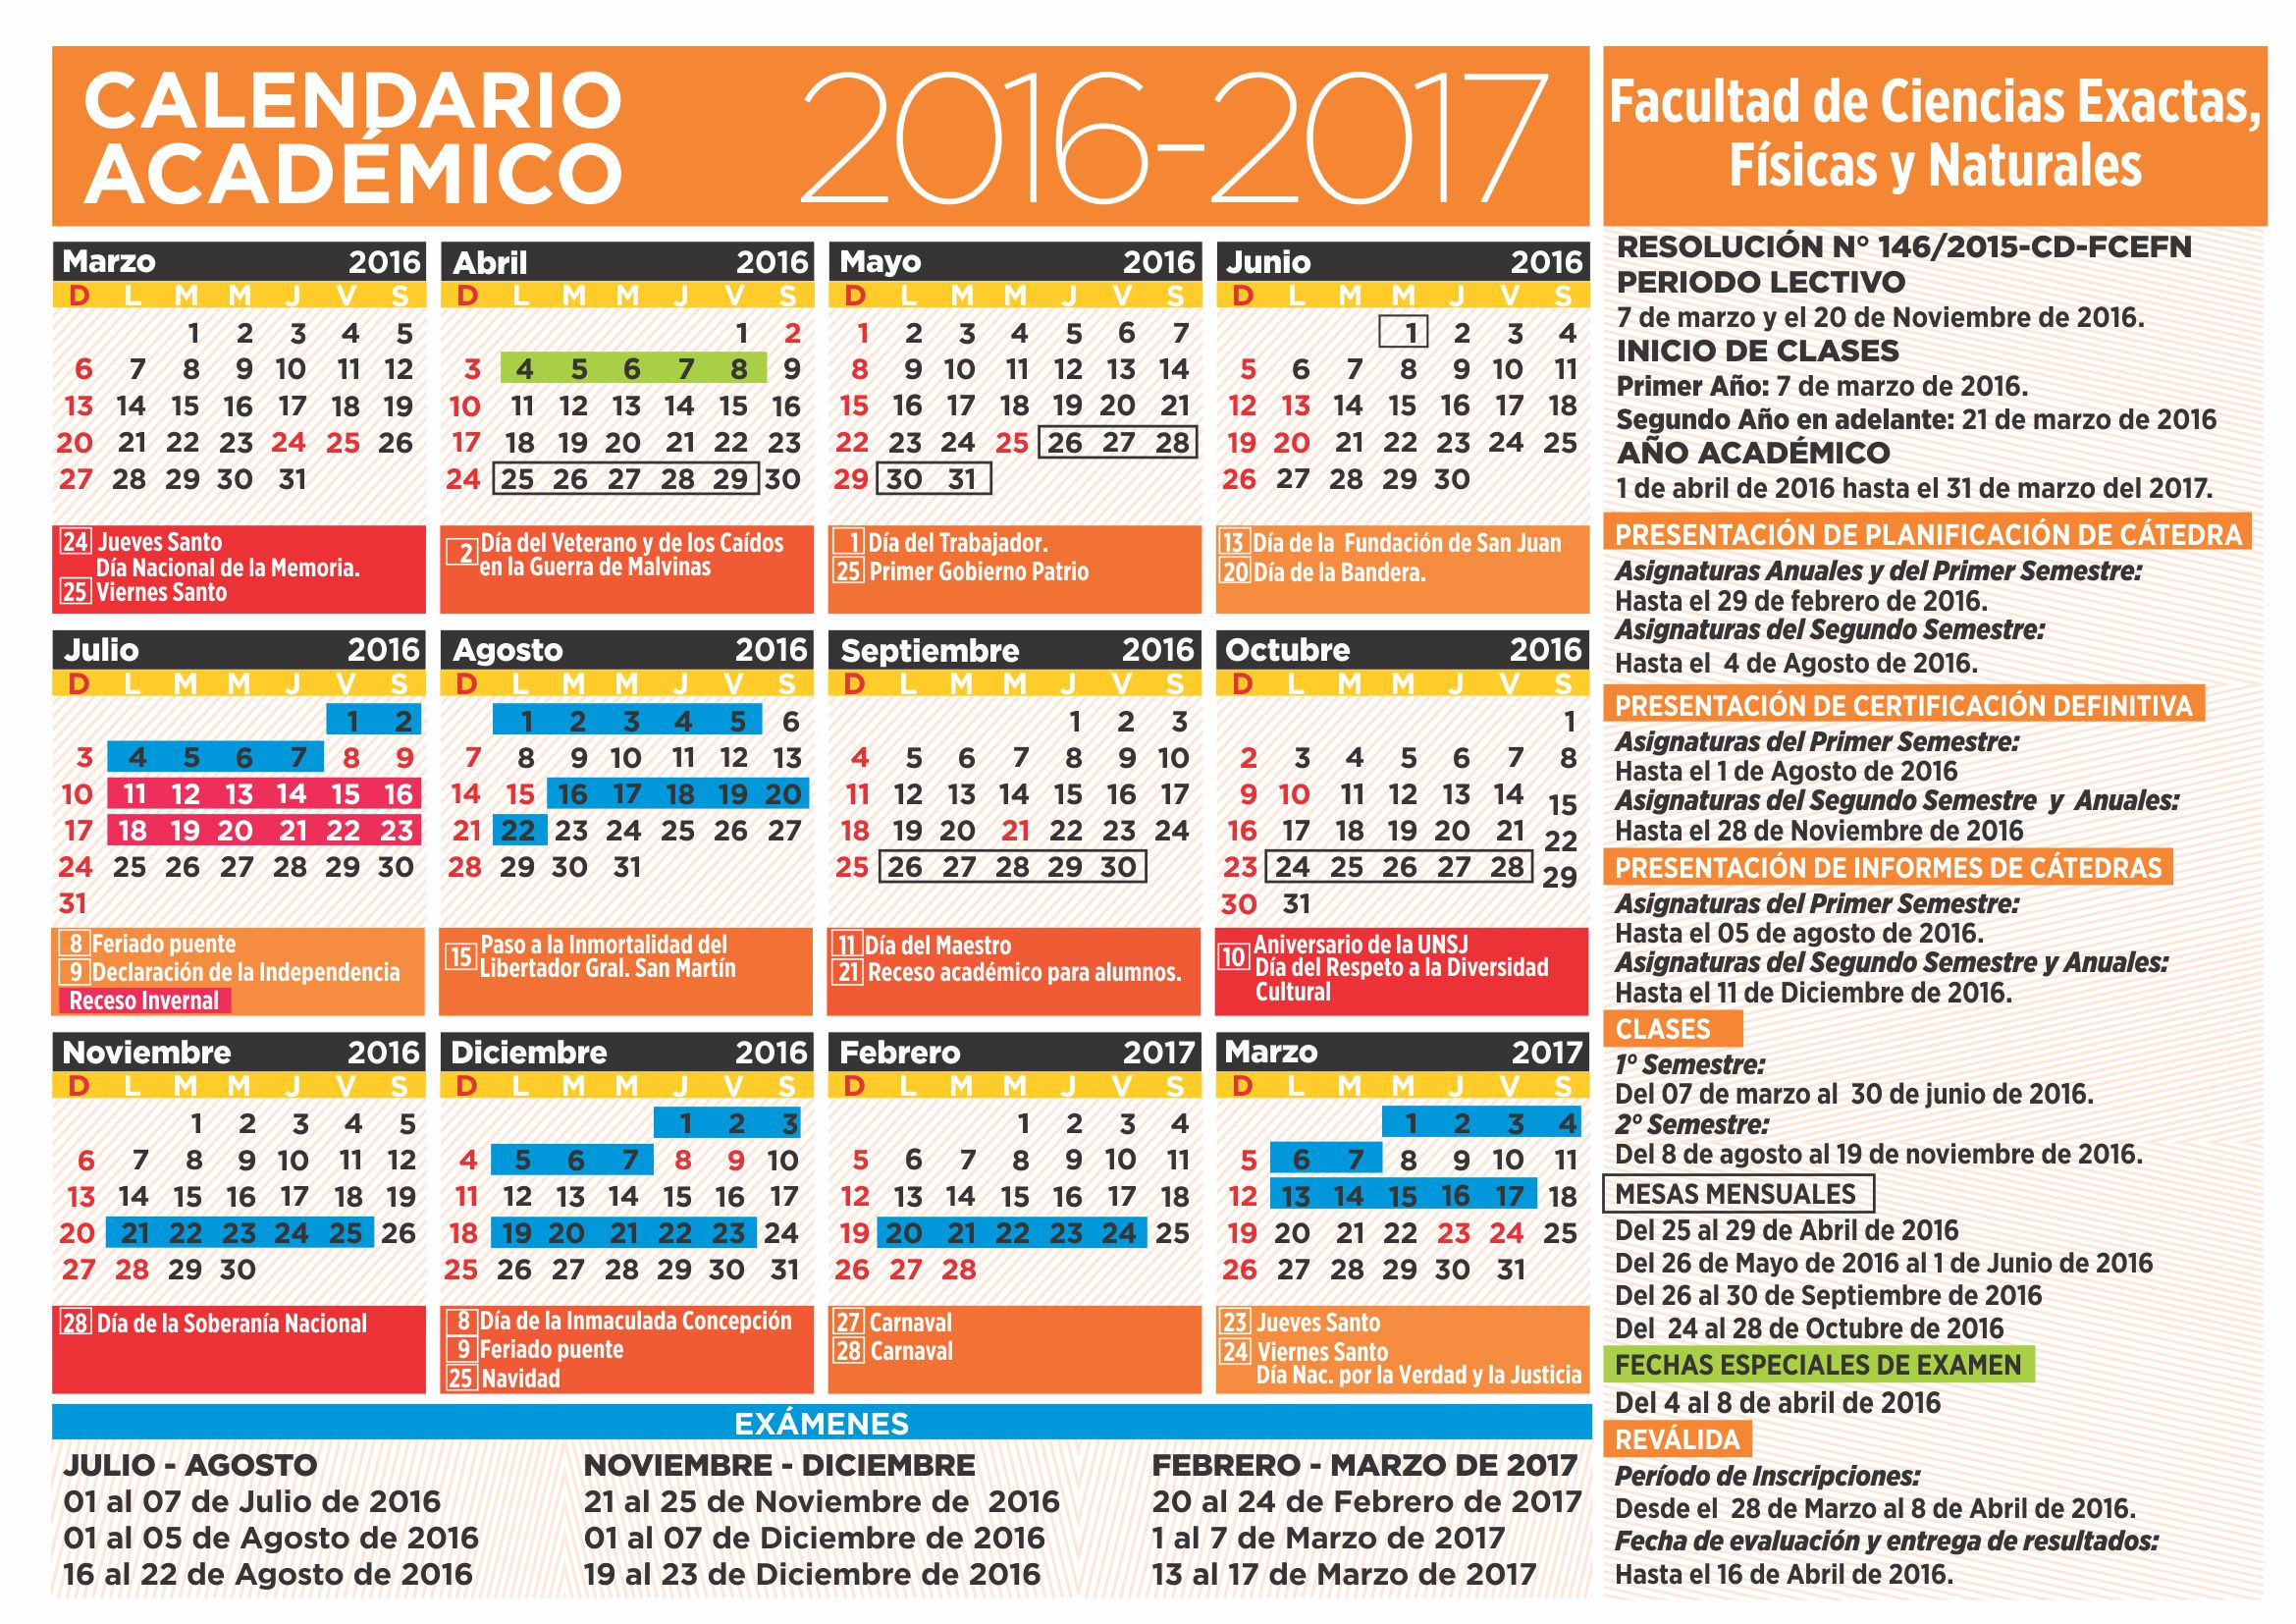 Pines concurso 2016 fechas inscripcion concurso nacional for Concurso meritos docentes 2016